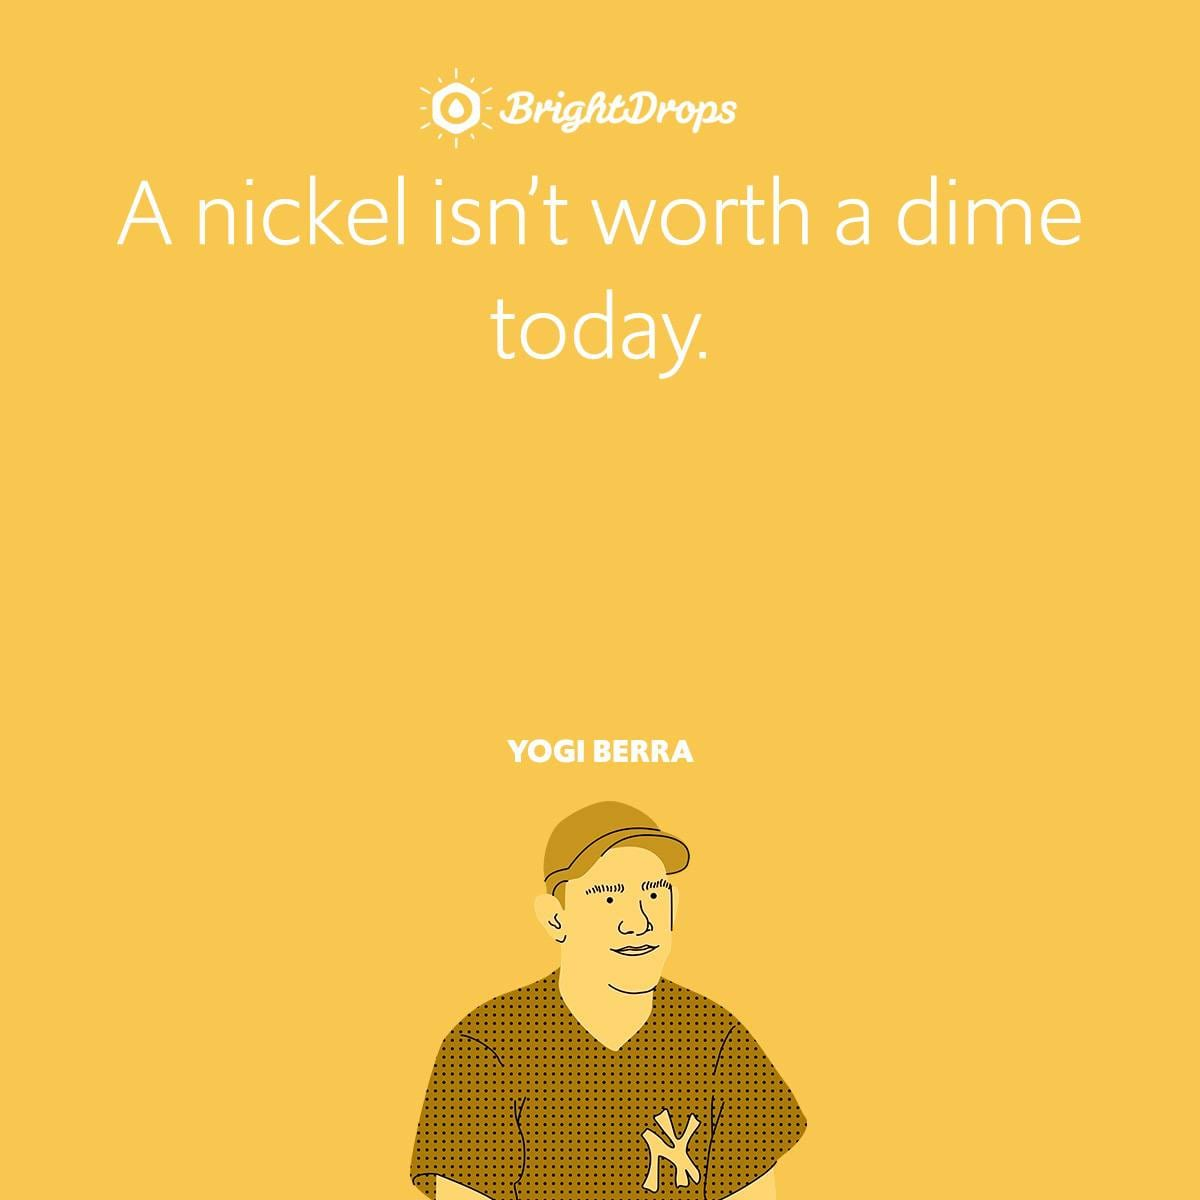 A nickel isn't worth a dime today.